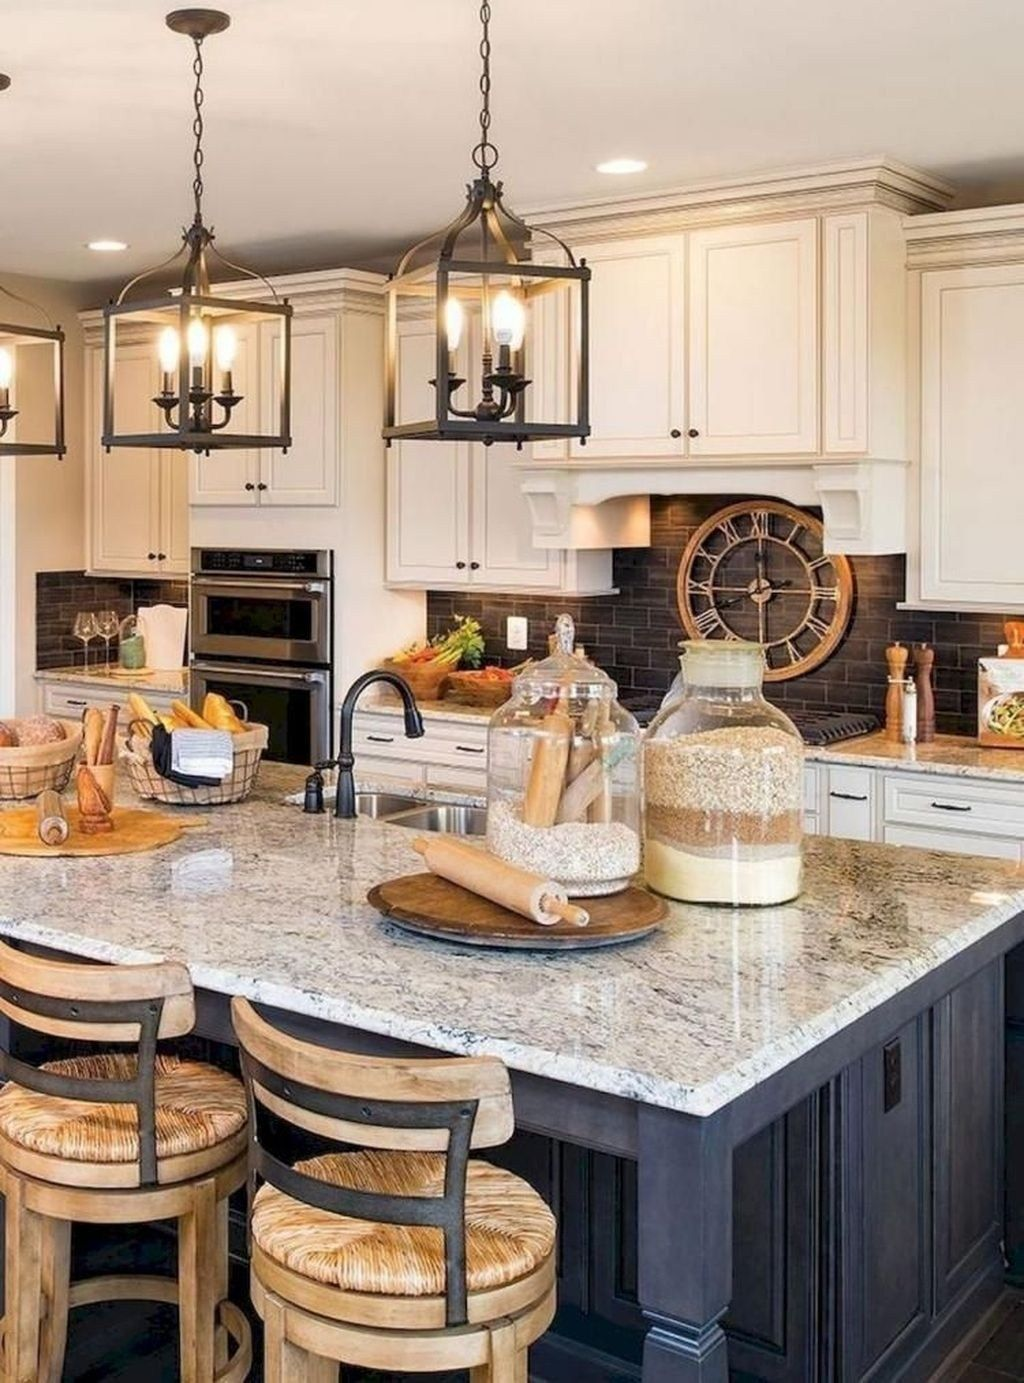 43 the best ideas for neutral kitchen design ideas on best farmhouse kitchen decor ideas and remodel create your dreams id=56649